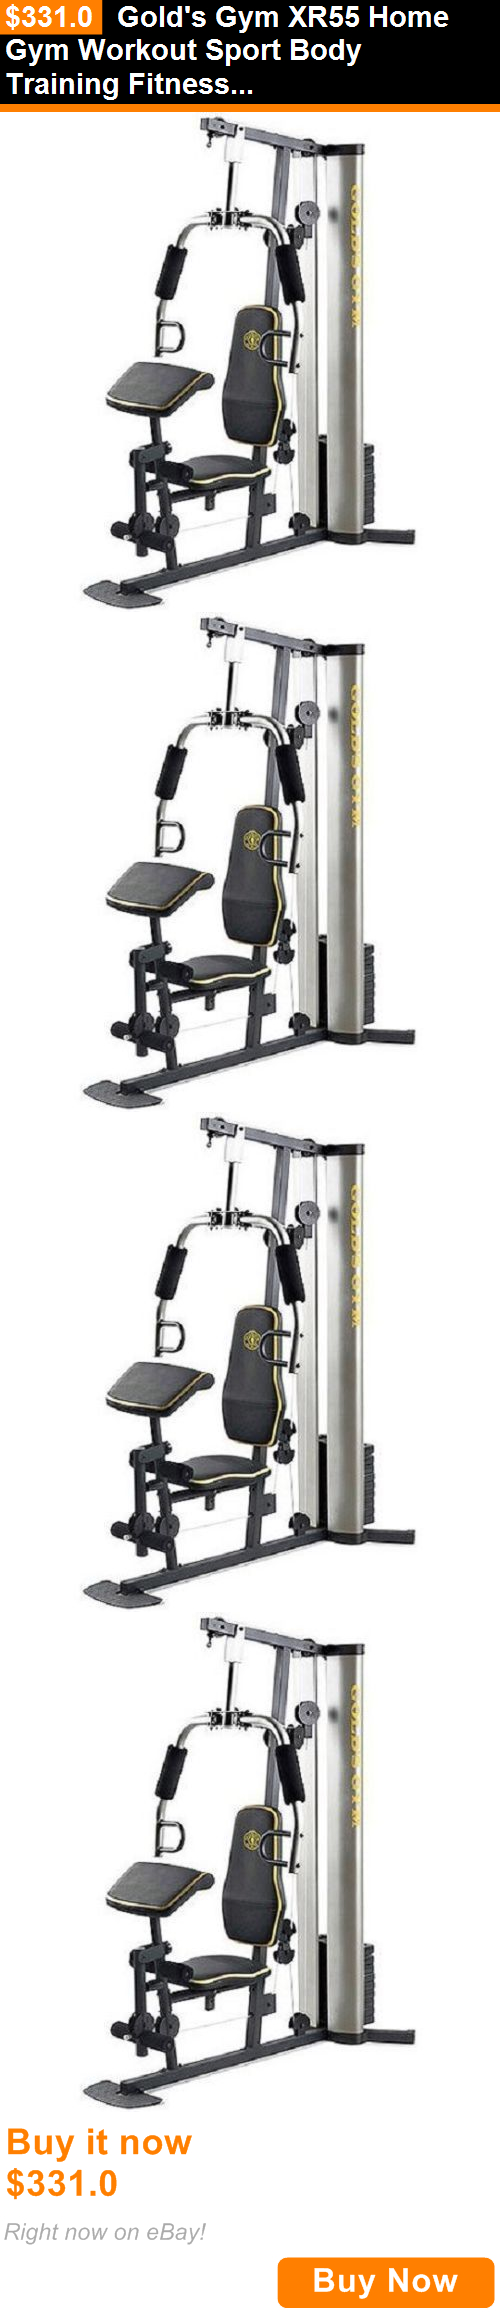 Home Gyms 158923 Golds Gym Xr55 Home Gym Workout Sport Body Training Fitness All In One Strength Buy It Now Only 331 At Home Gym Gym Workouts Body Training